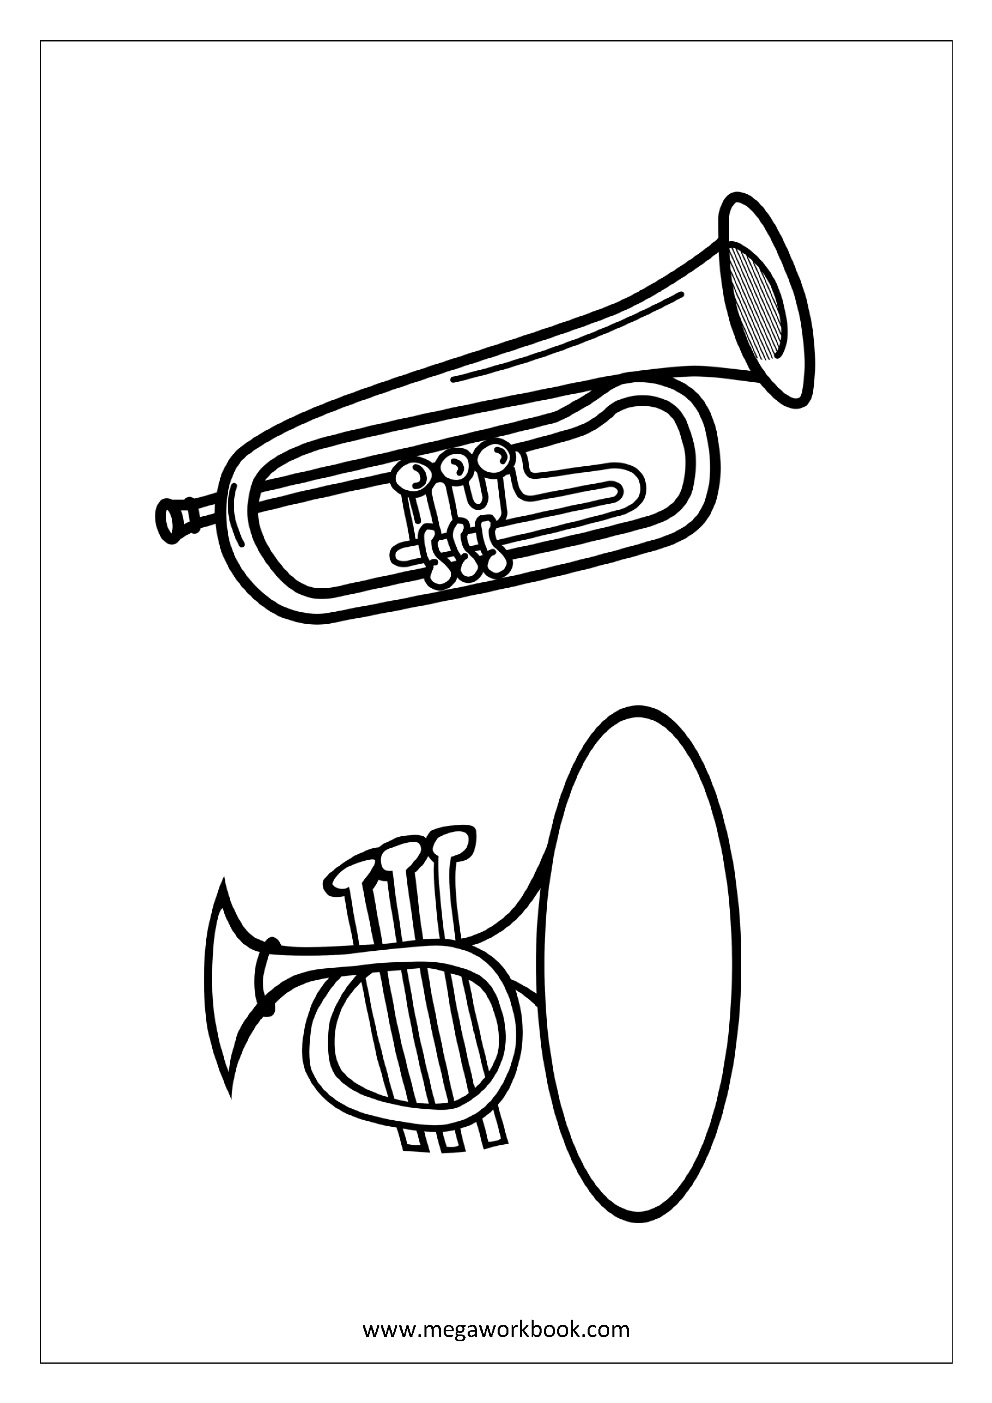 trumpet coloring free coloring sheets musical instruments megaworkbook trumpet coloring